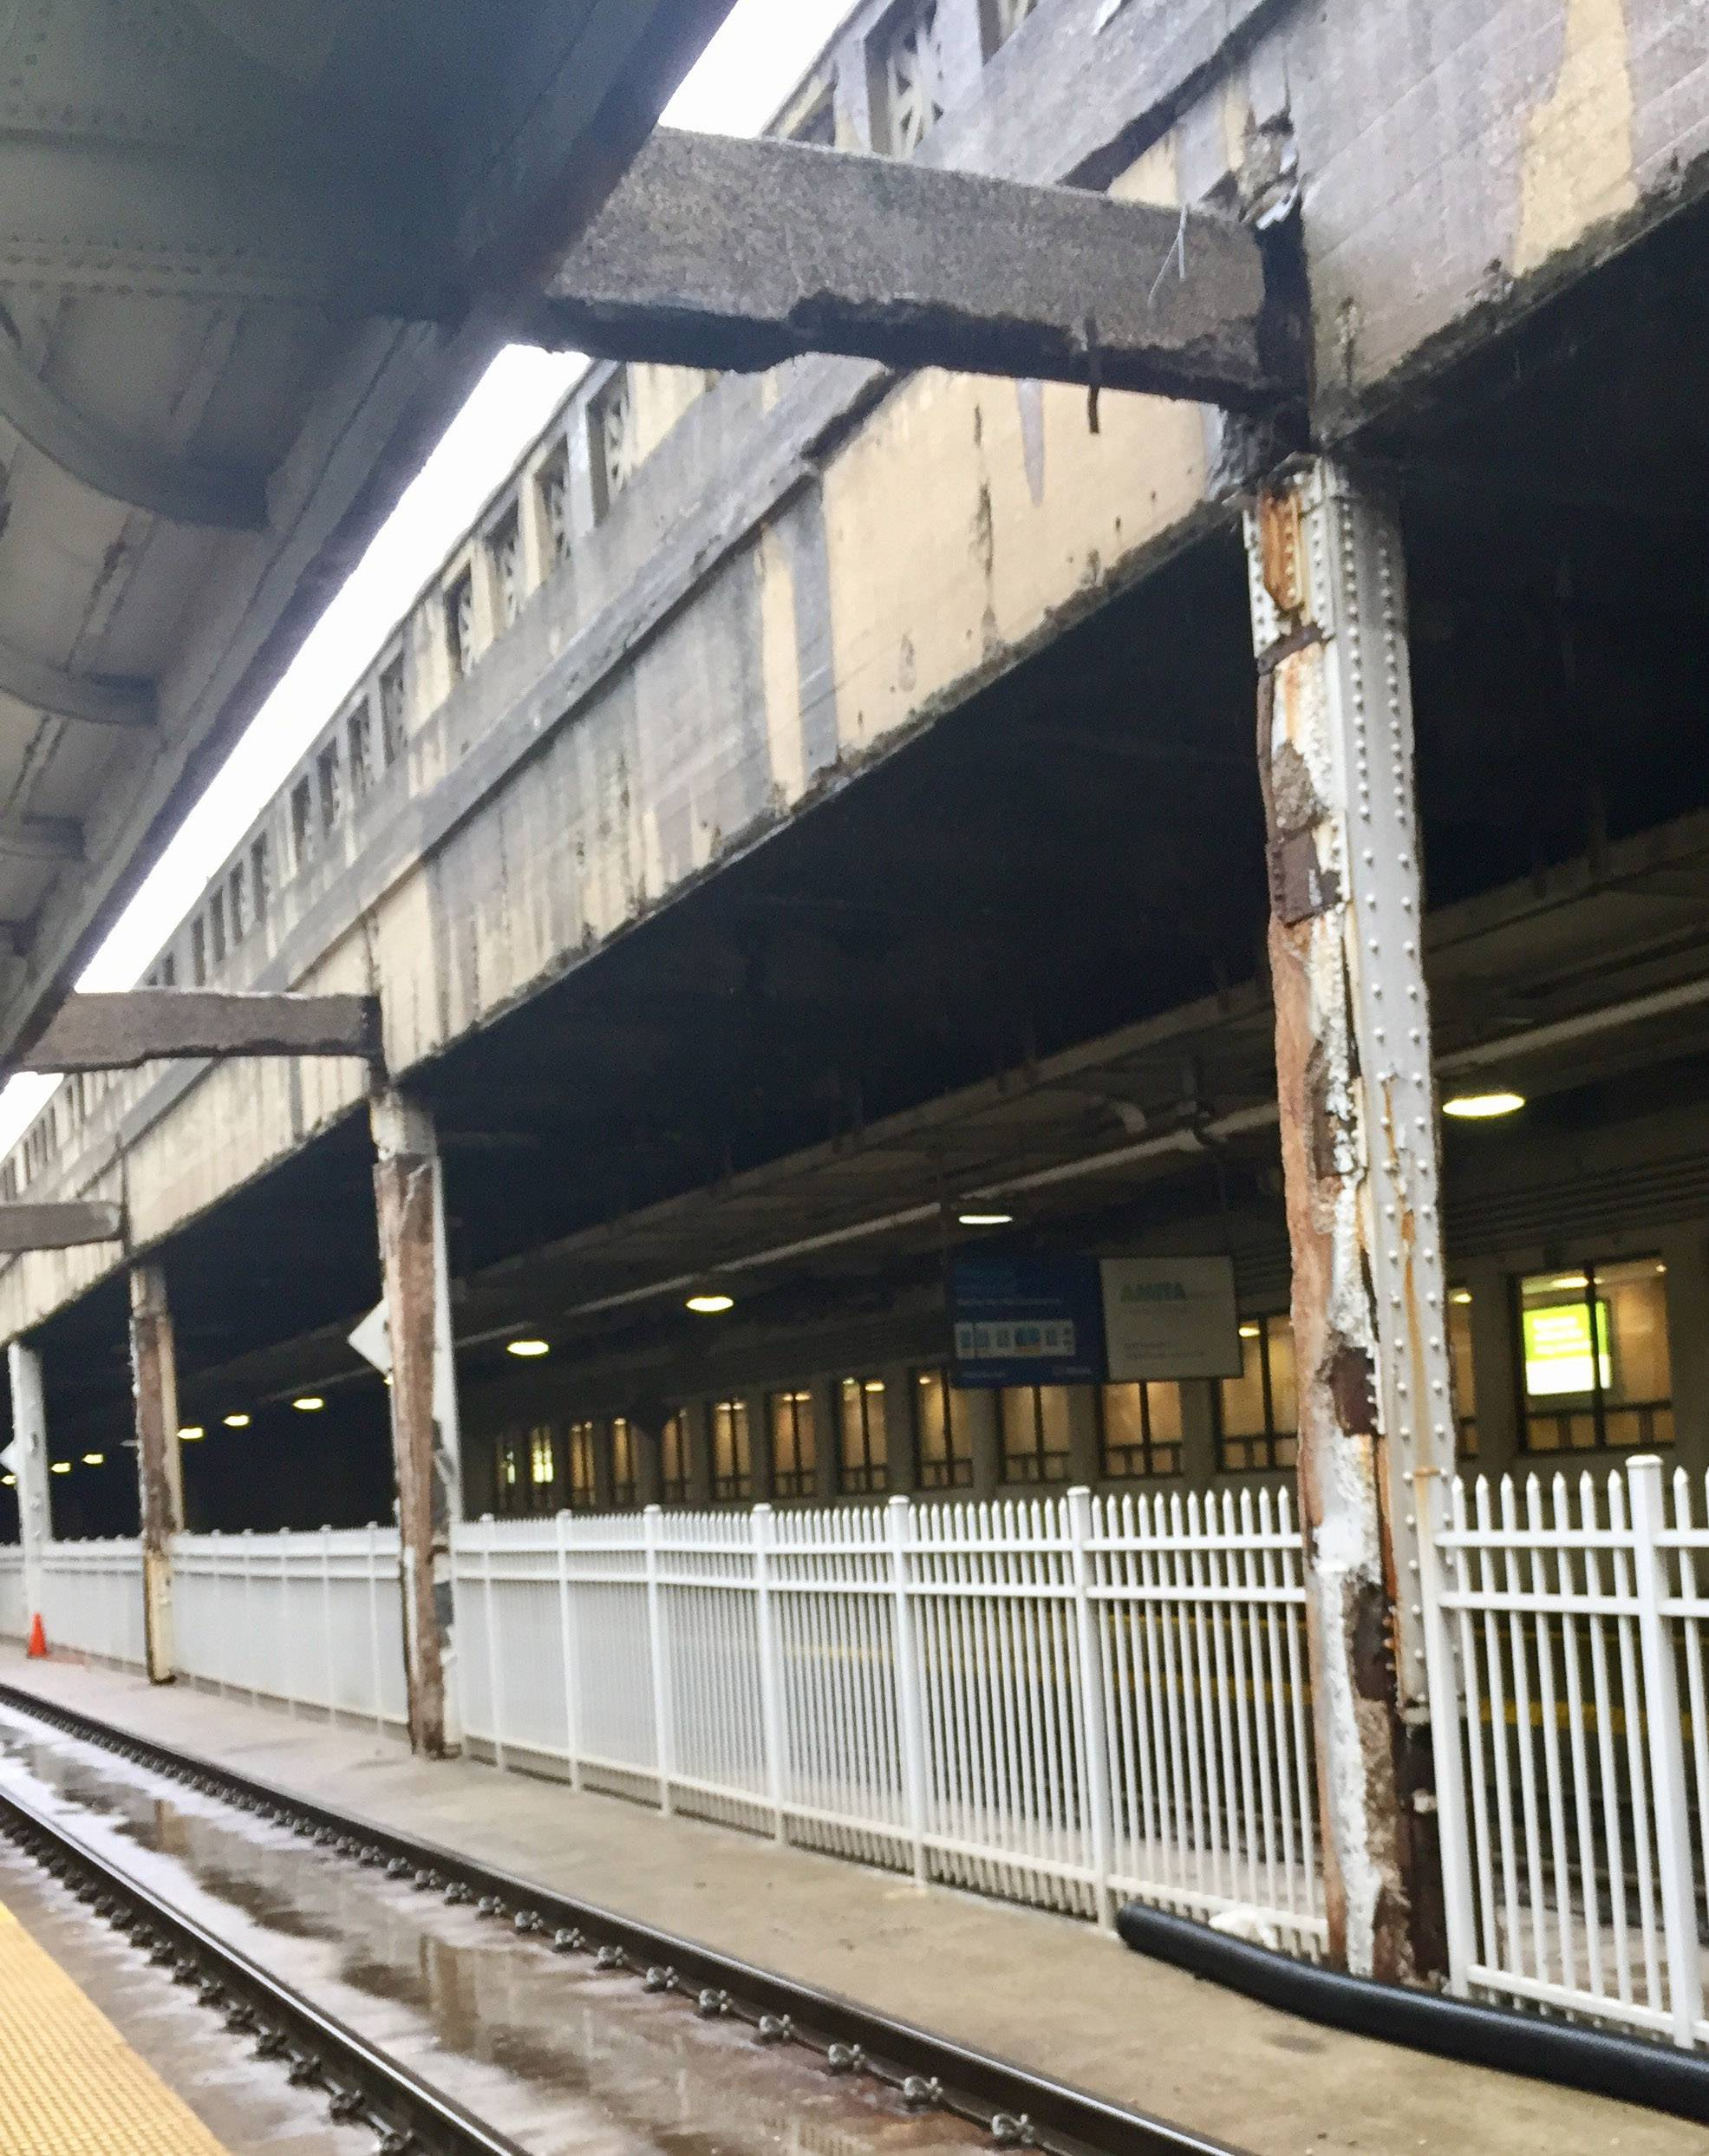 Rubble on track at Union Station came from postal service property